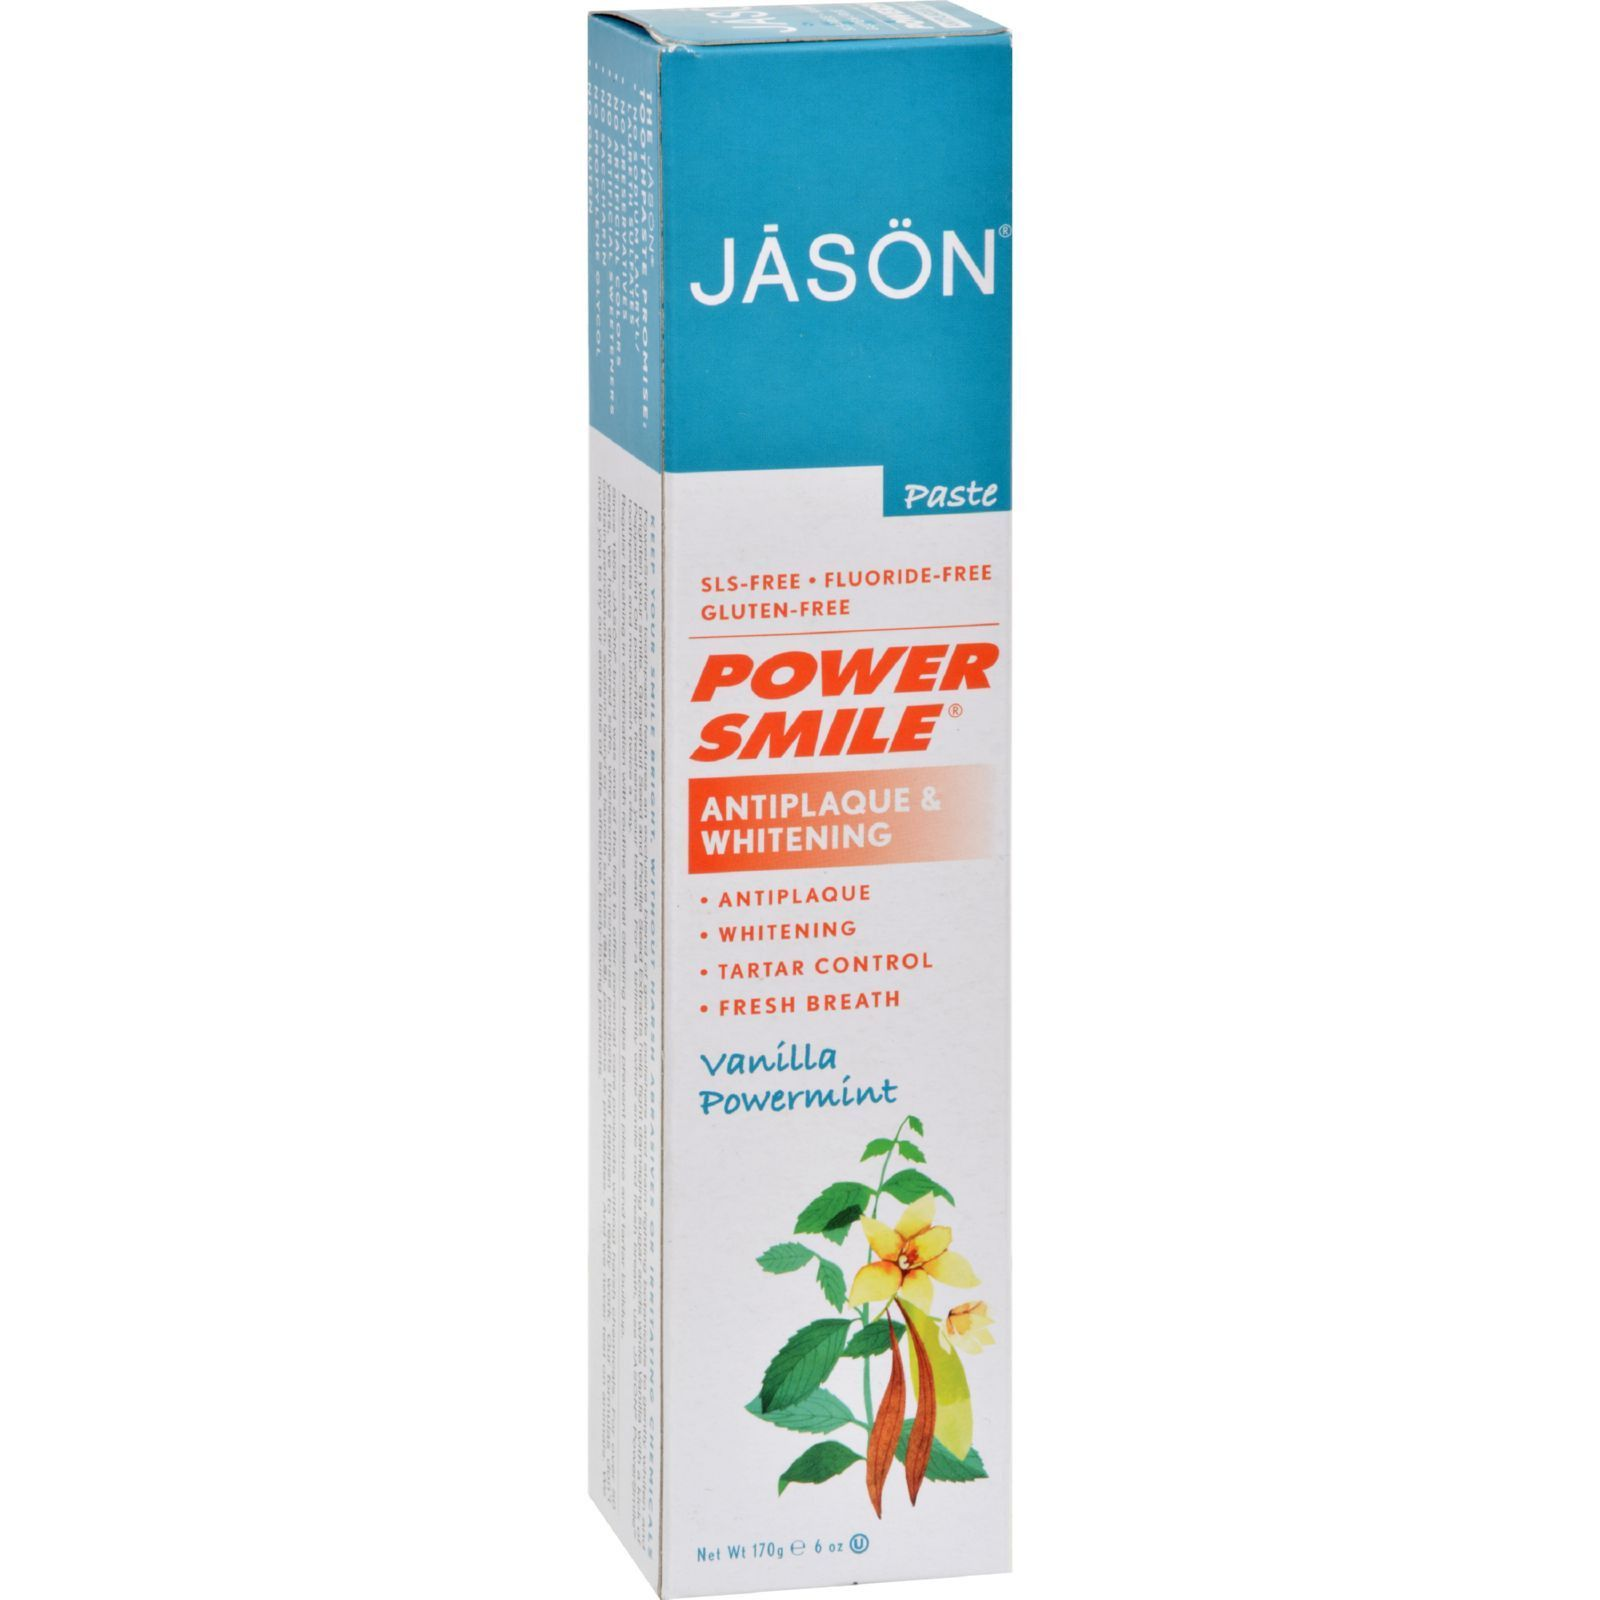 Jason PowerSmile Toothpaste Vanilla Mint - 6 oz - Jason PowerSmile Toothpaste Vanilla Mint Description: Exclusive Natural Whiteners! Vanilla Mint Toothpaste Fluoride Free toothpaste helps prevent the formation of cavity causing plaque buildup with Grapefruit Seed Extract, while freshening breath naturally with smooth Vanilla flavor followed by a kick of Peppermint, Silica and Sodium Bicarbonate (Baking Powder ) are natural whiteners that aid in the removal of stains, promoting a beautiful…